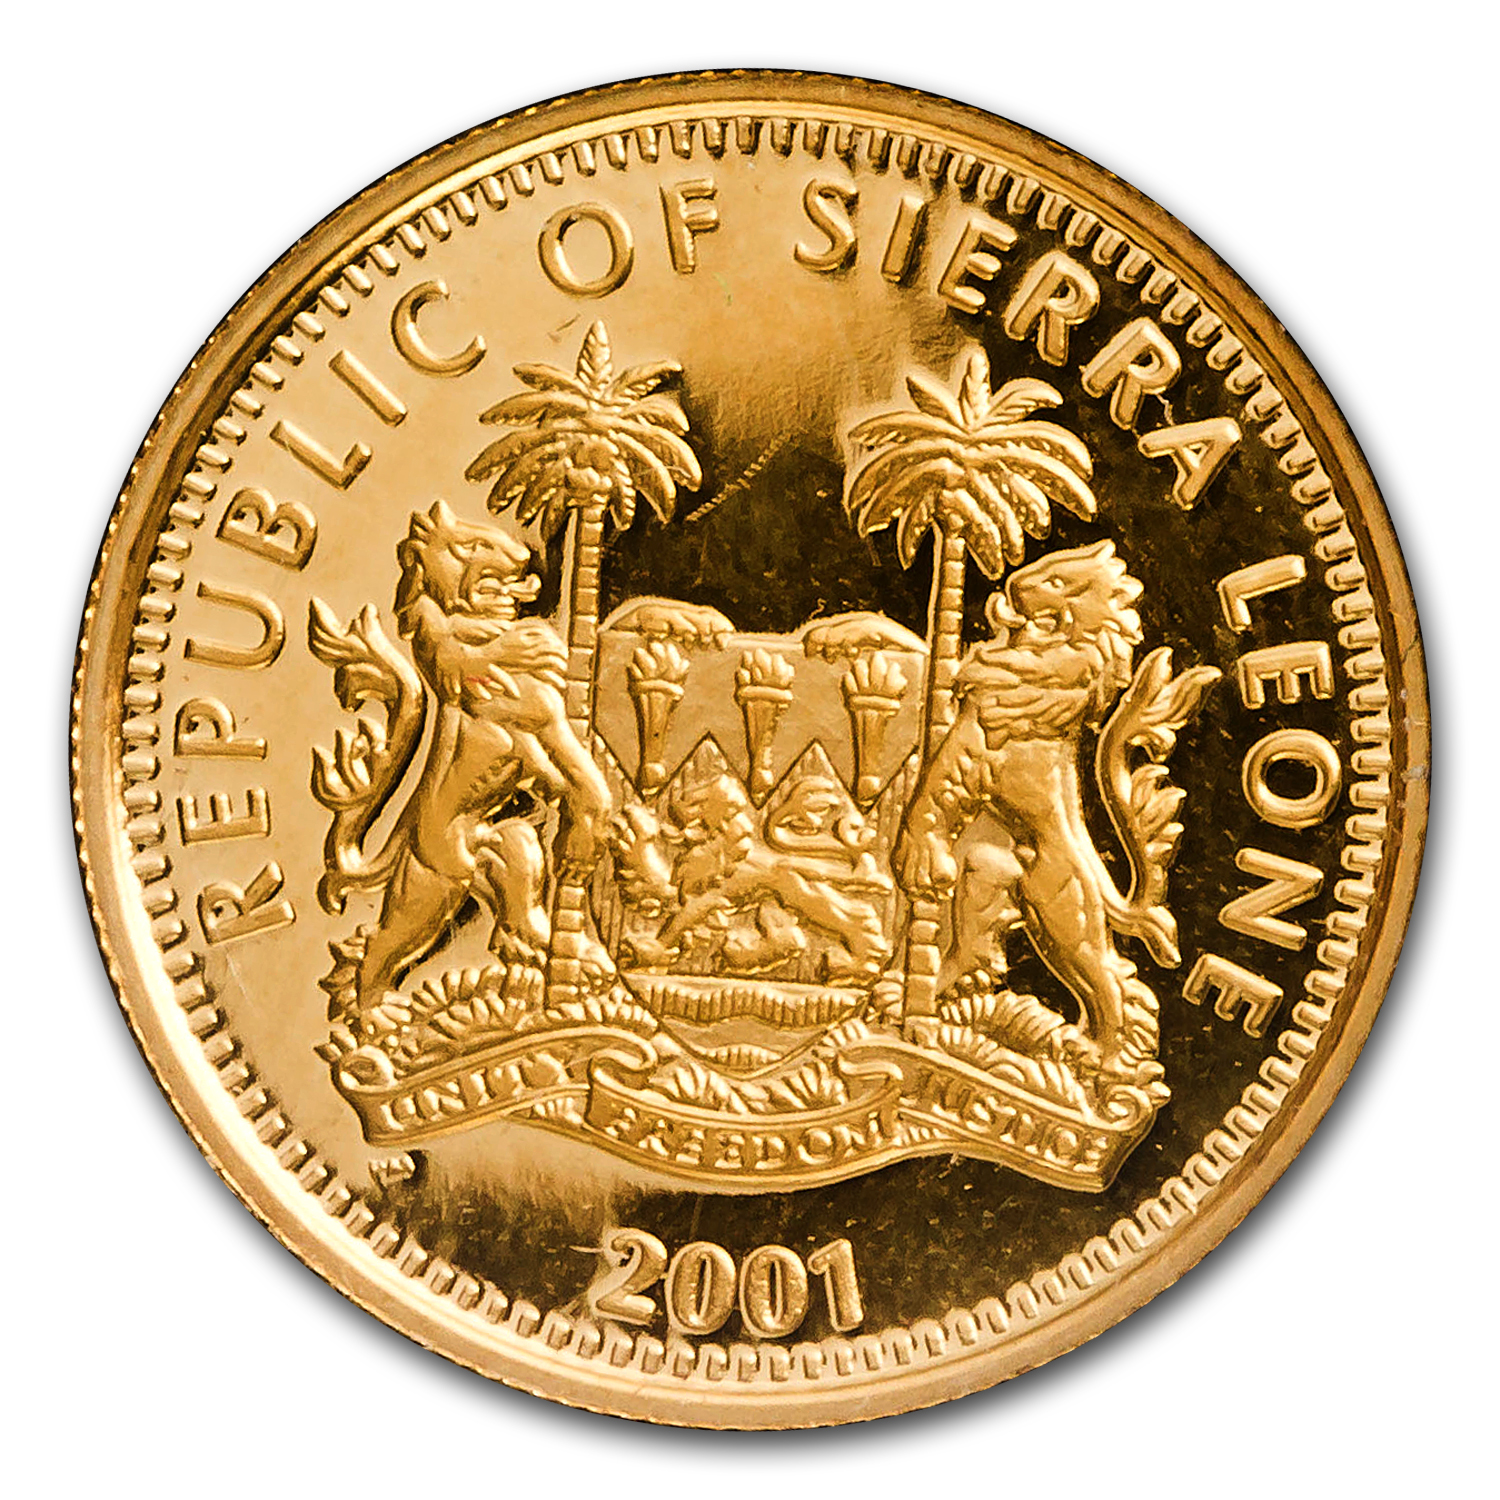 Sierra Leone $25 Gold Proof Coin  Big Cats    AGW 0.10